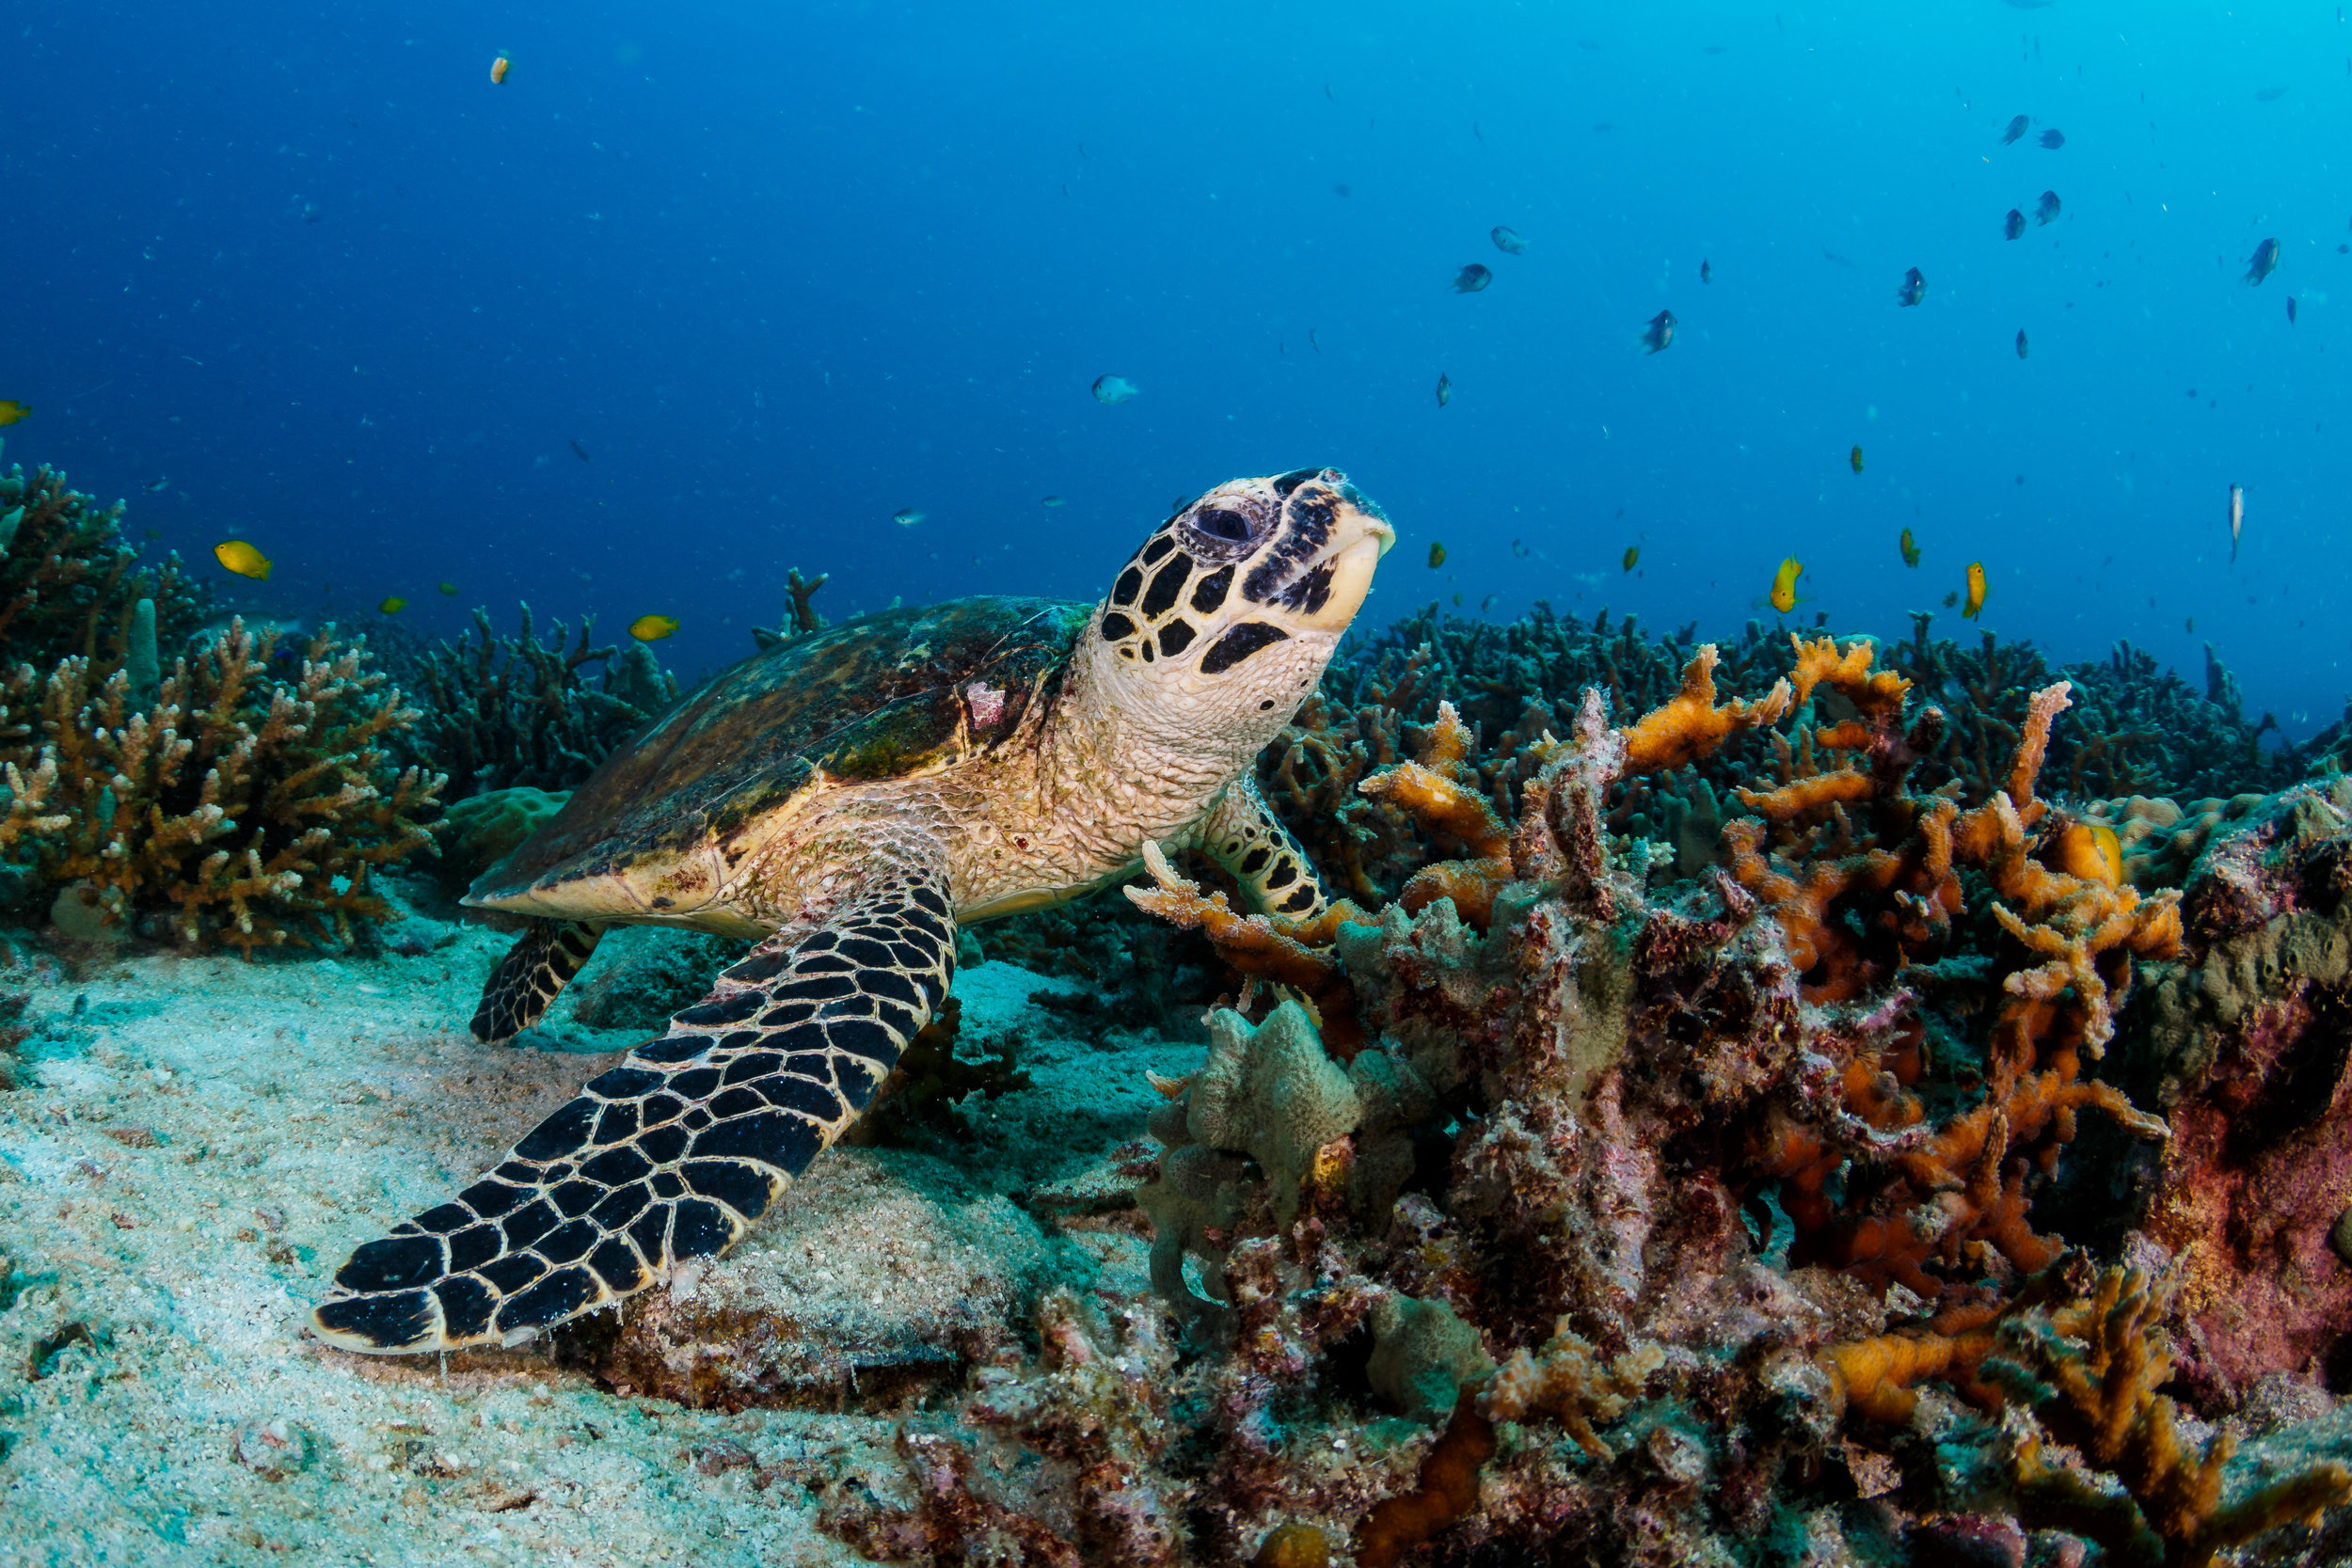 TURTLE CREDIT: GRANT THOMAS / coral reef image bank